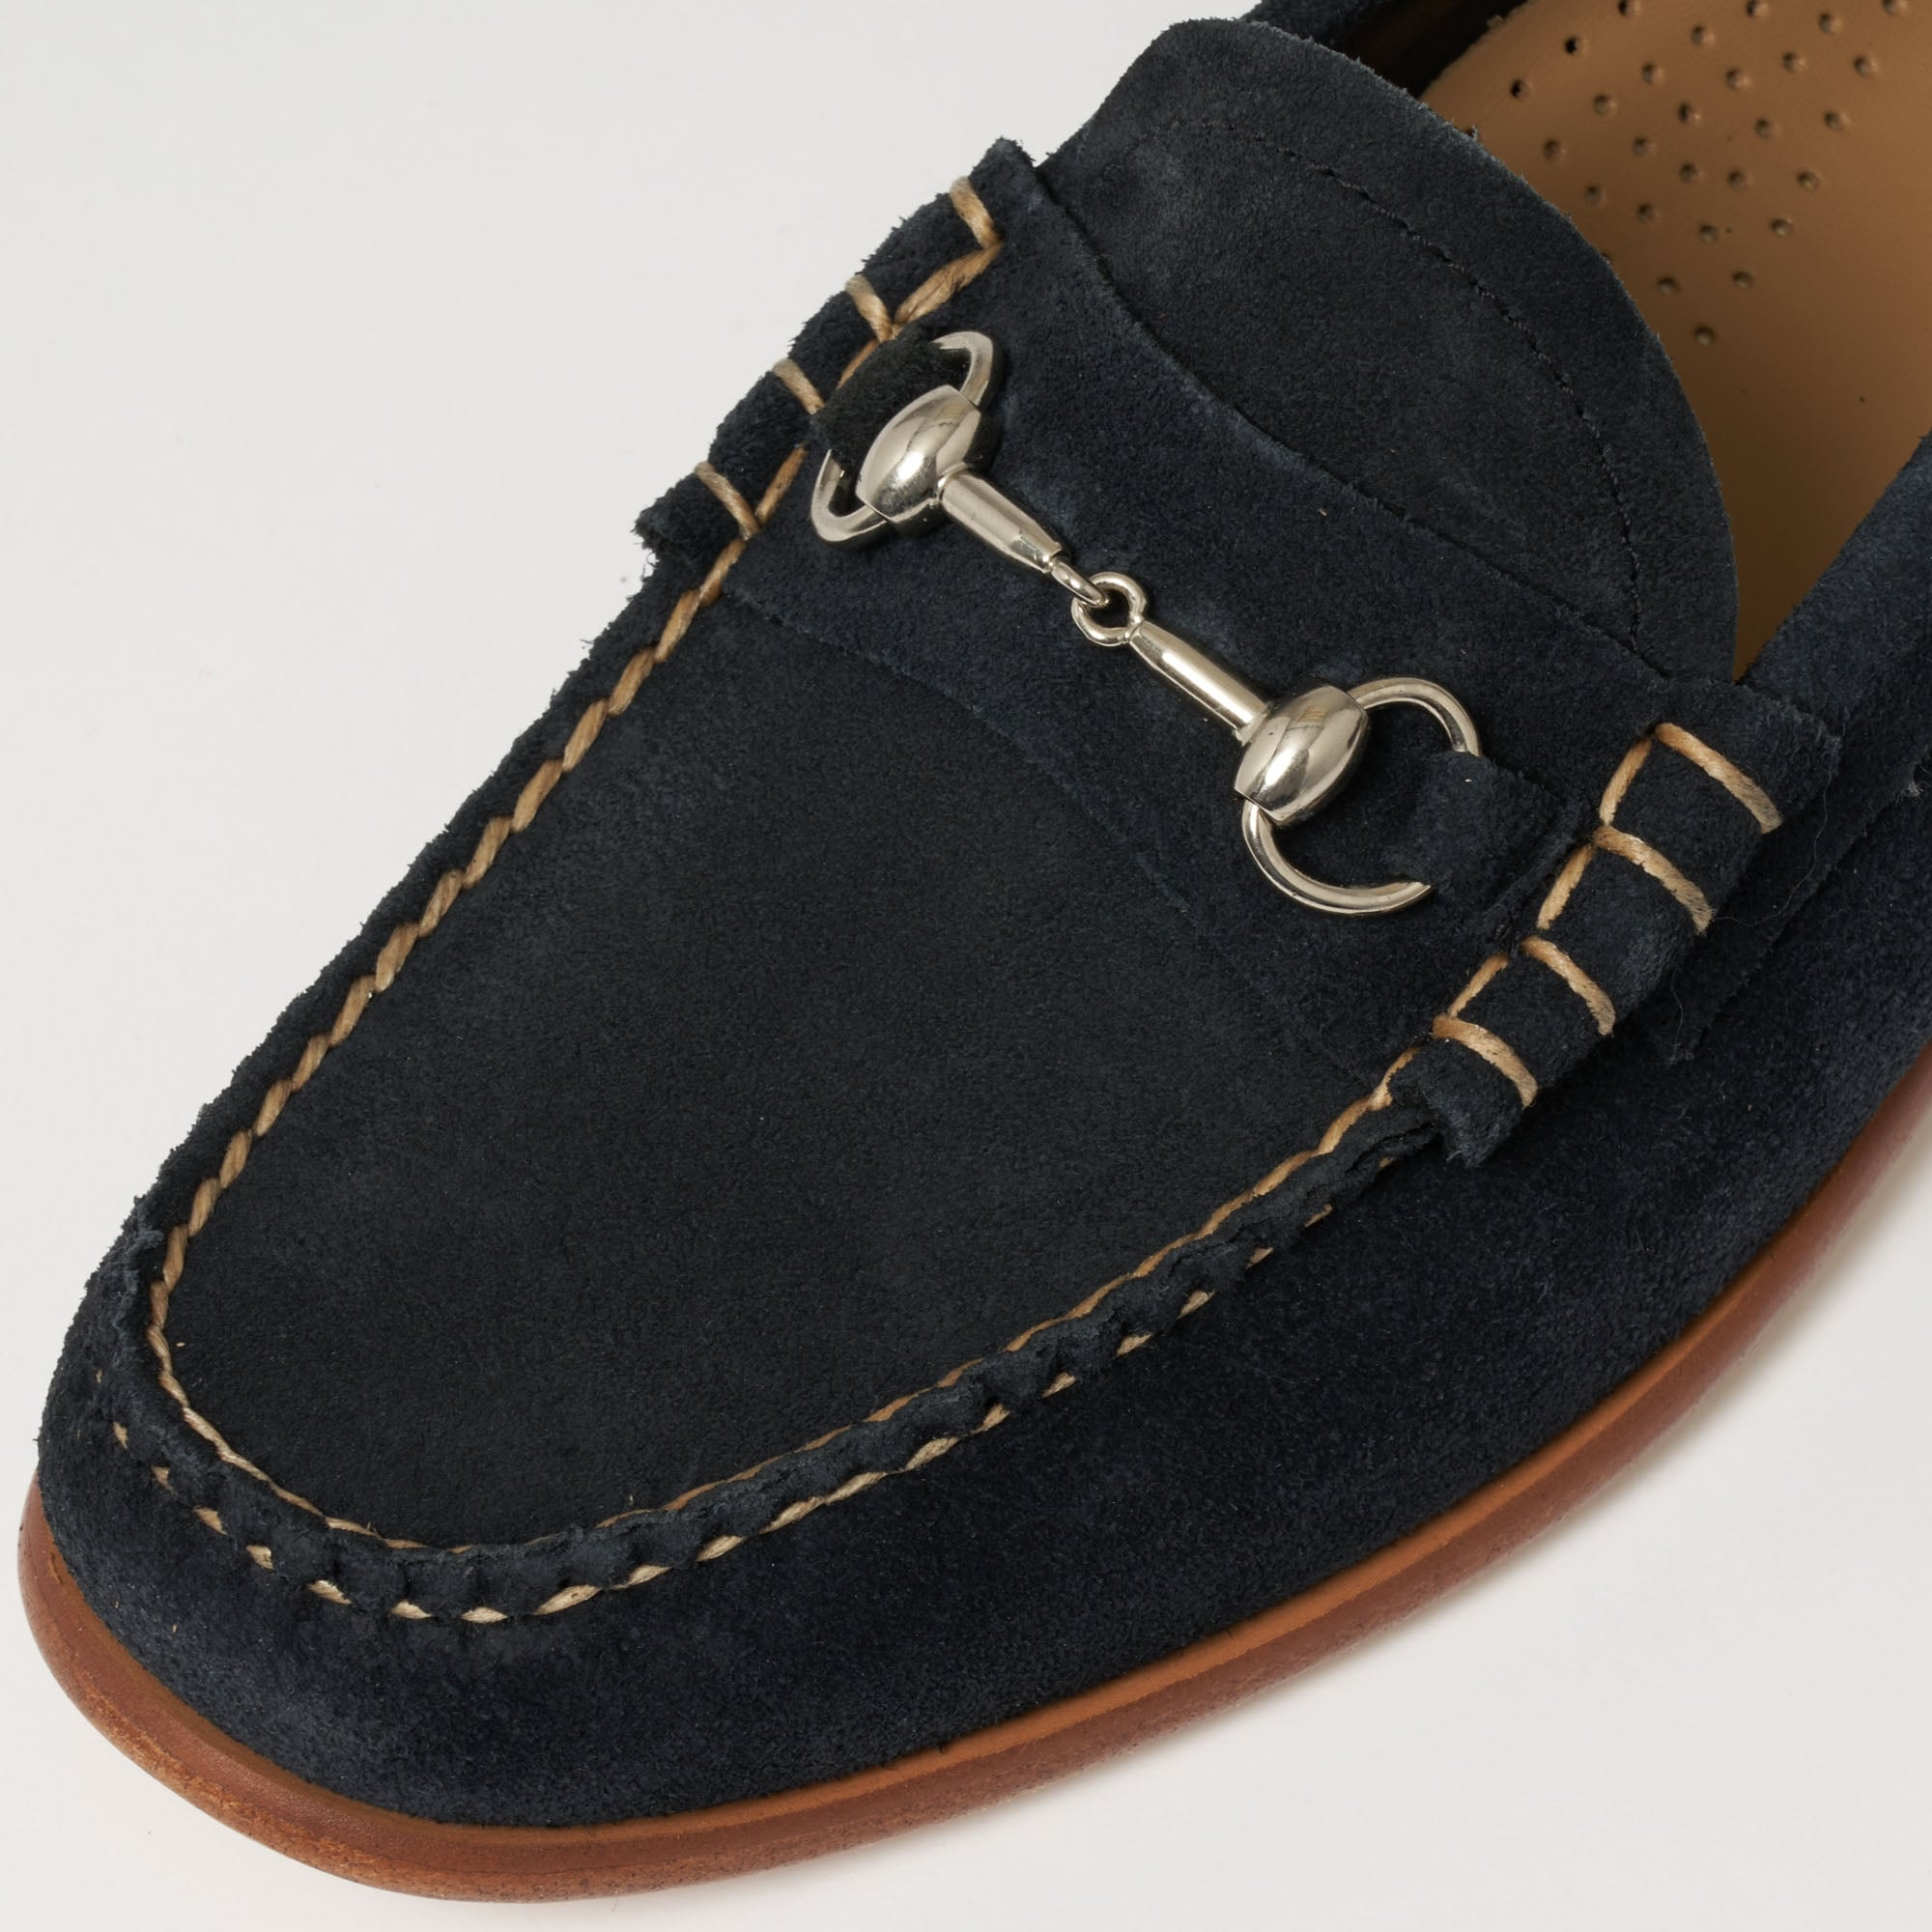 Bass Weejuns Lincoln Palm Springs Reverso Navy Suede Loafers Ba10078 D Island Shoes Moccasine Slip On Lacoste Black